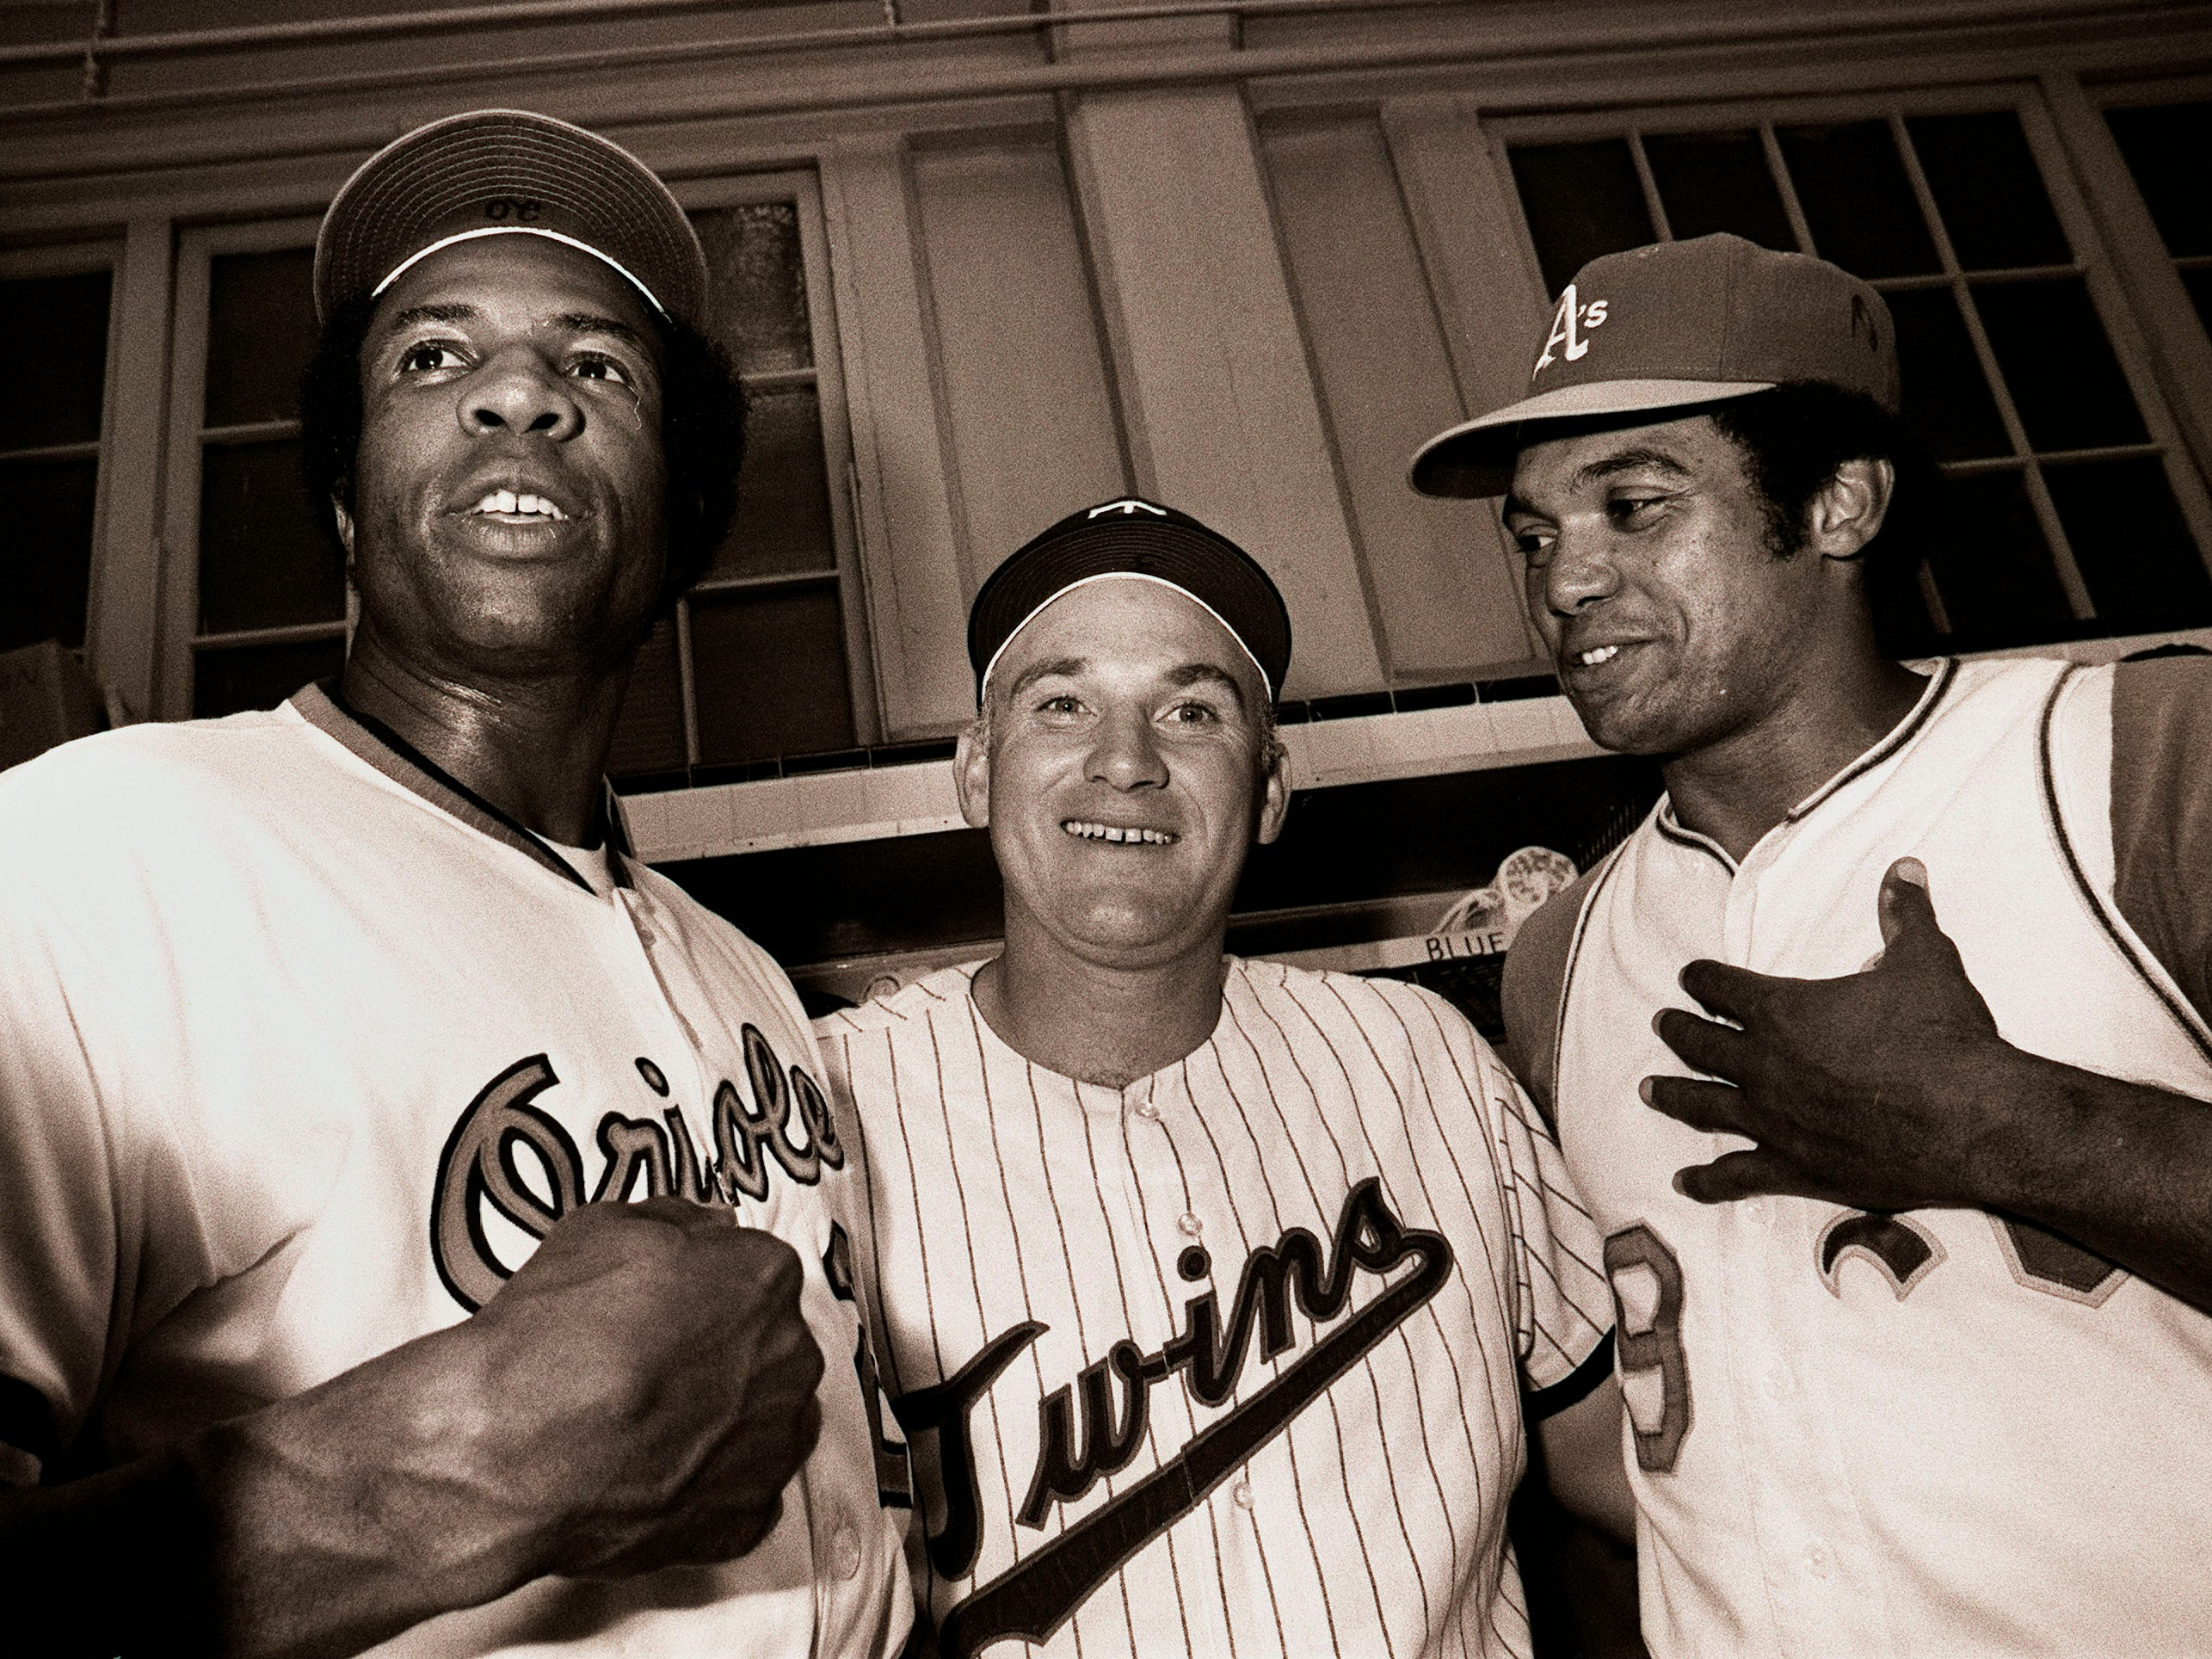 American League All-Stars, from left, Orioles' Frank Robinson, Twins' Harmon Killebrew and Athletics' Reggie Jackson in 1971.